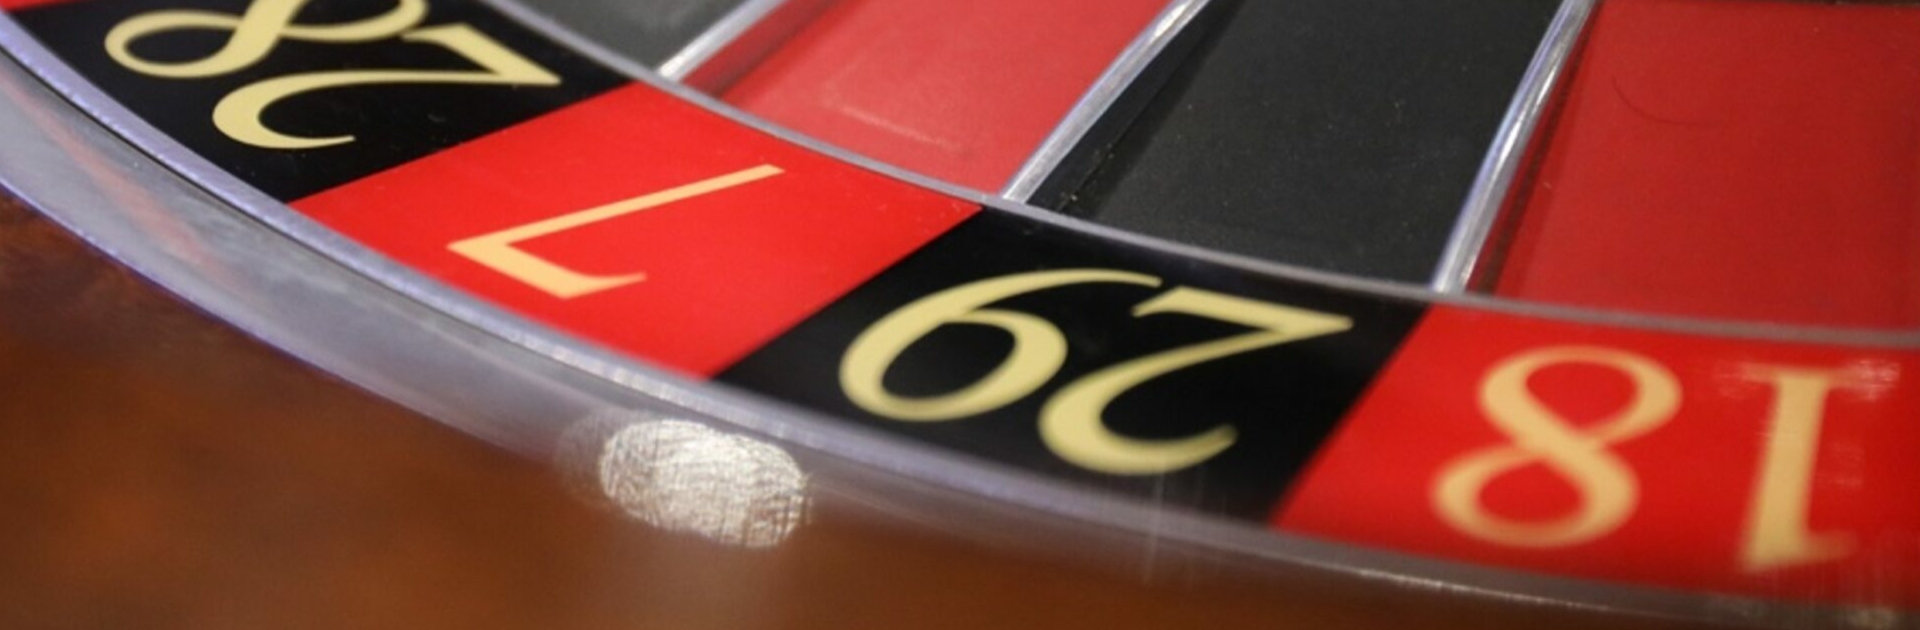 Online Casino Games to Play for Real Money